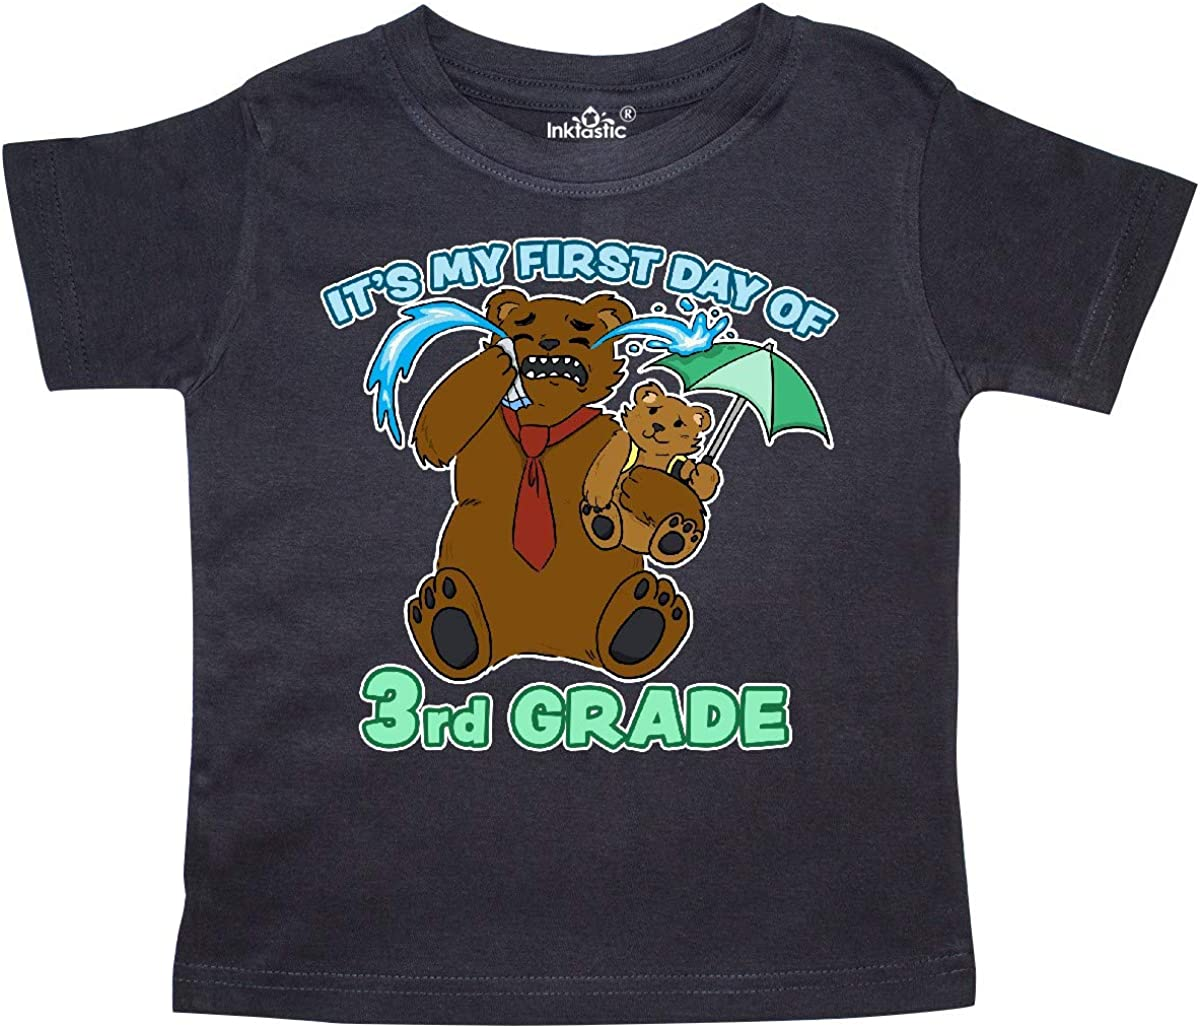 inktastic Its My 1st Day of 3rd Grade with Cute Bear Family Toddler T-Shirt